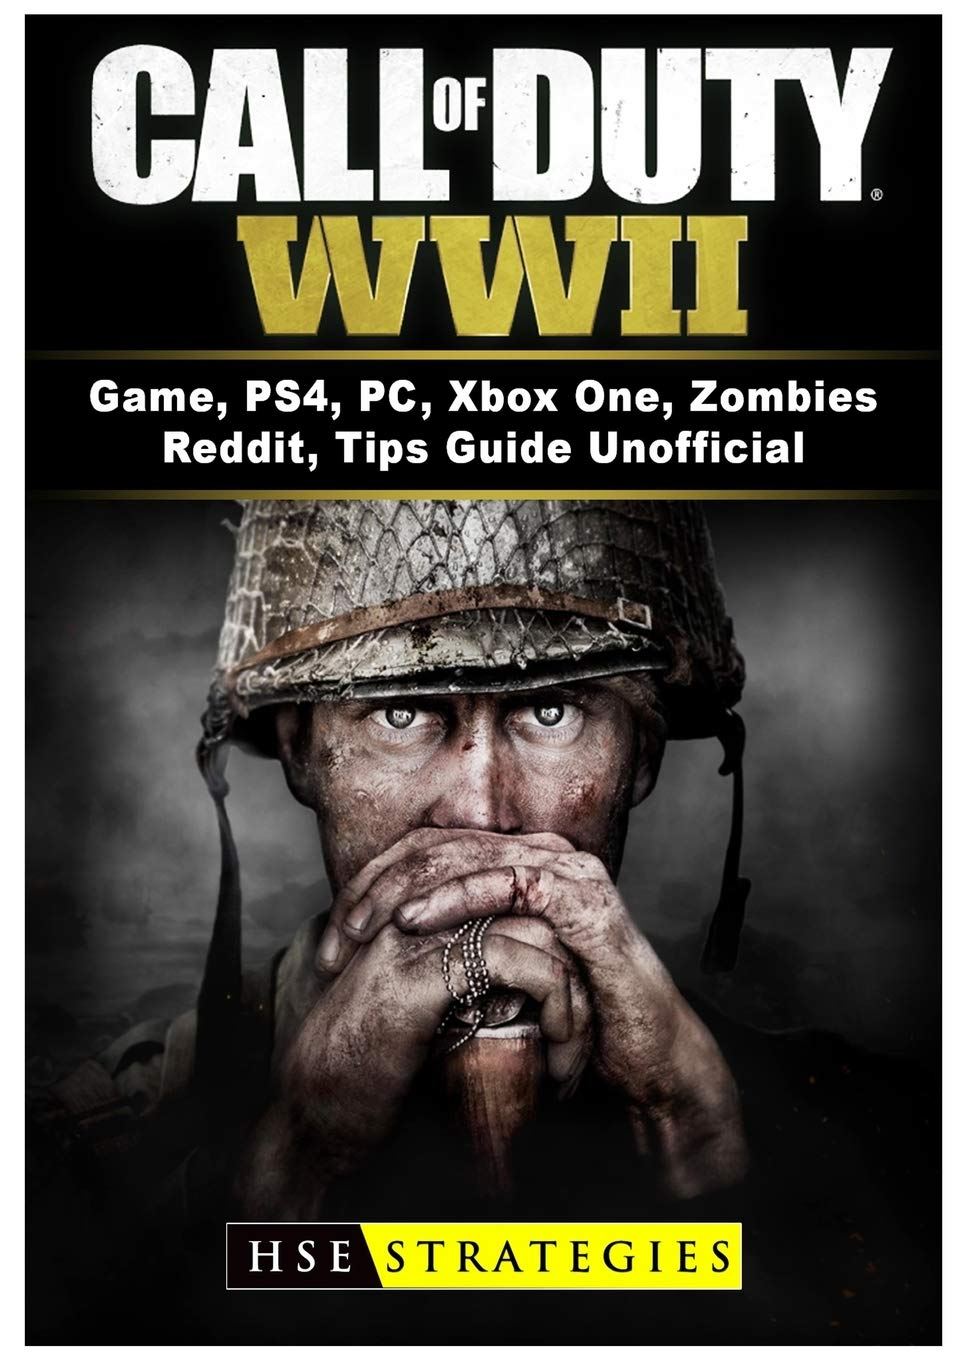 Call of Duty WWII Game, PS4, PC, Xbox One, Zombies, Reddit, Tips ...